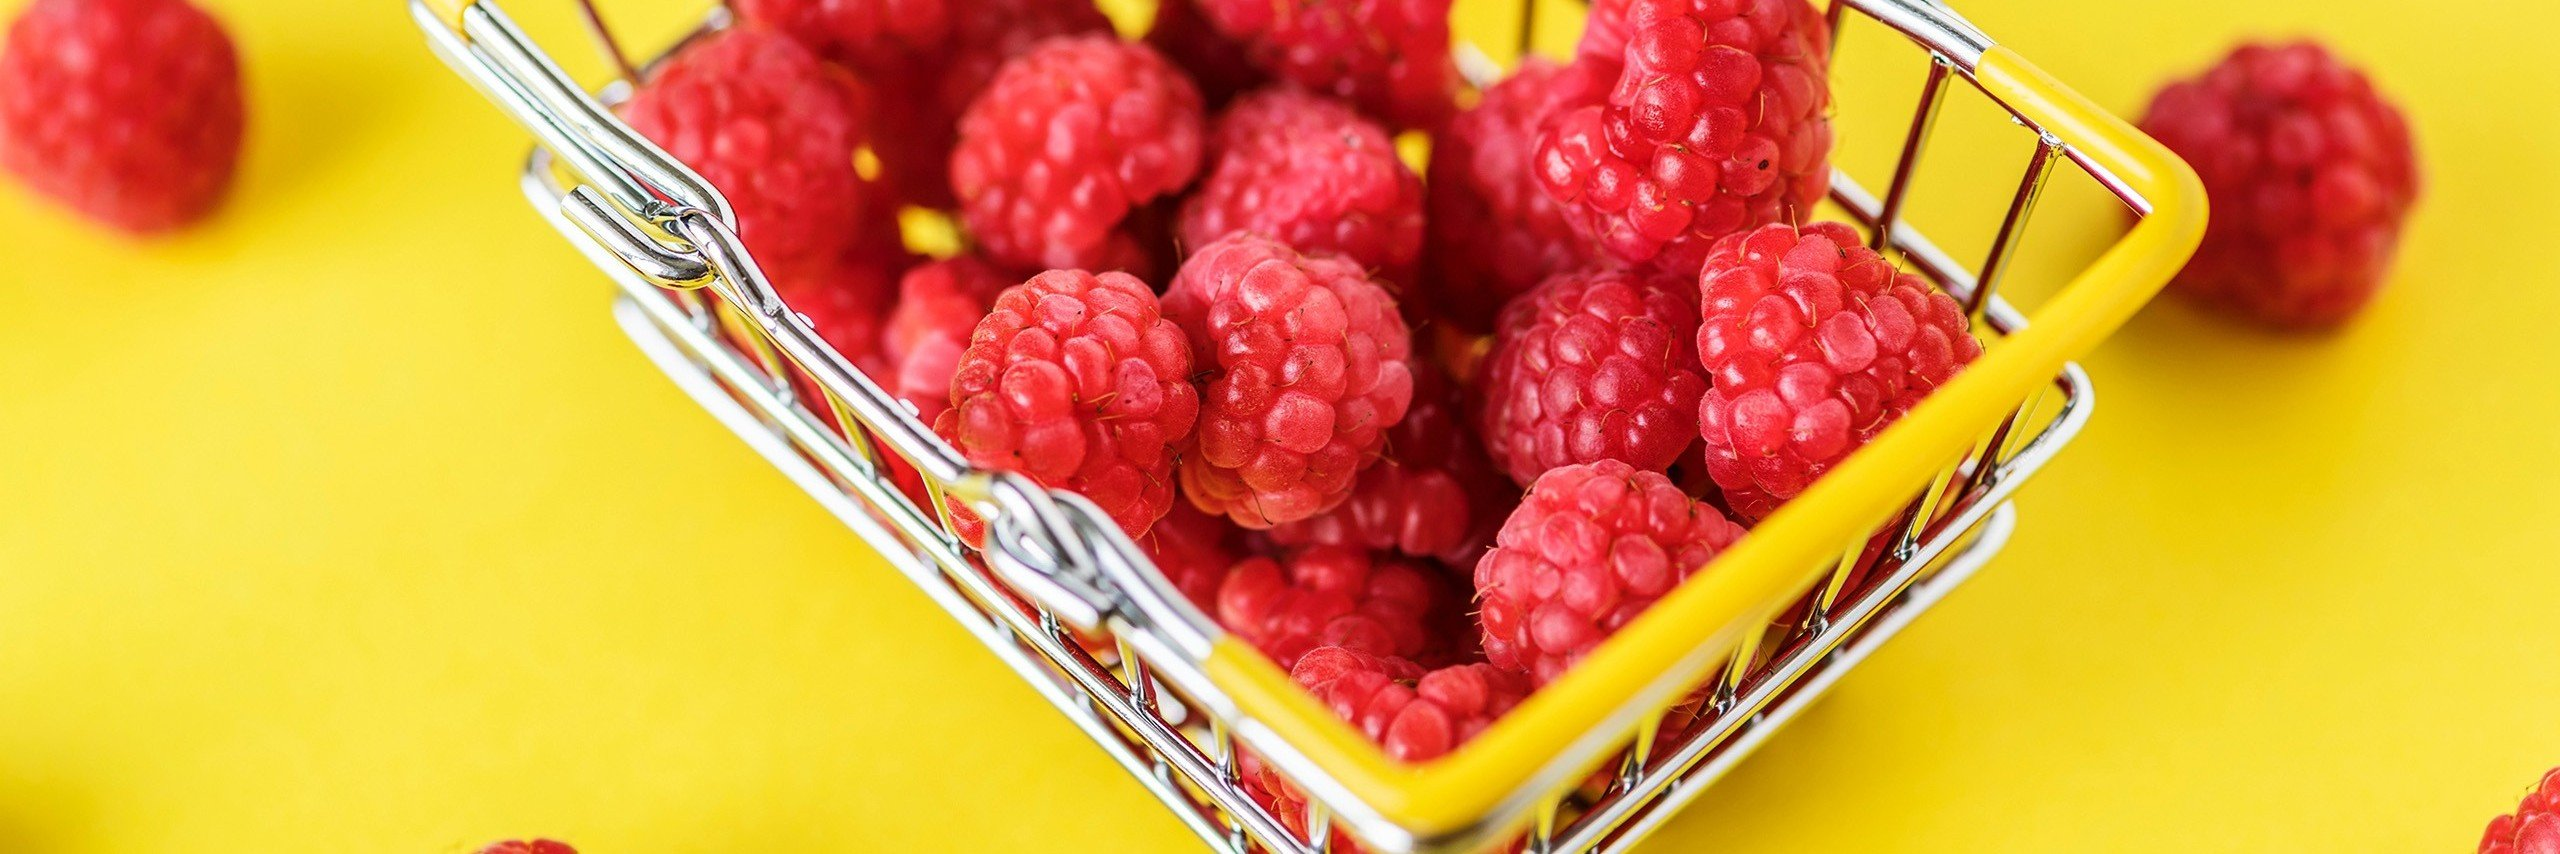 What foods to eat during your cycle